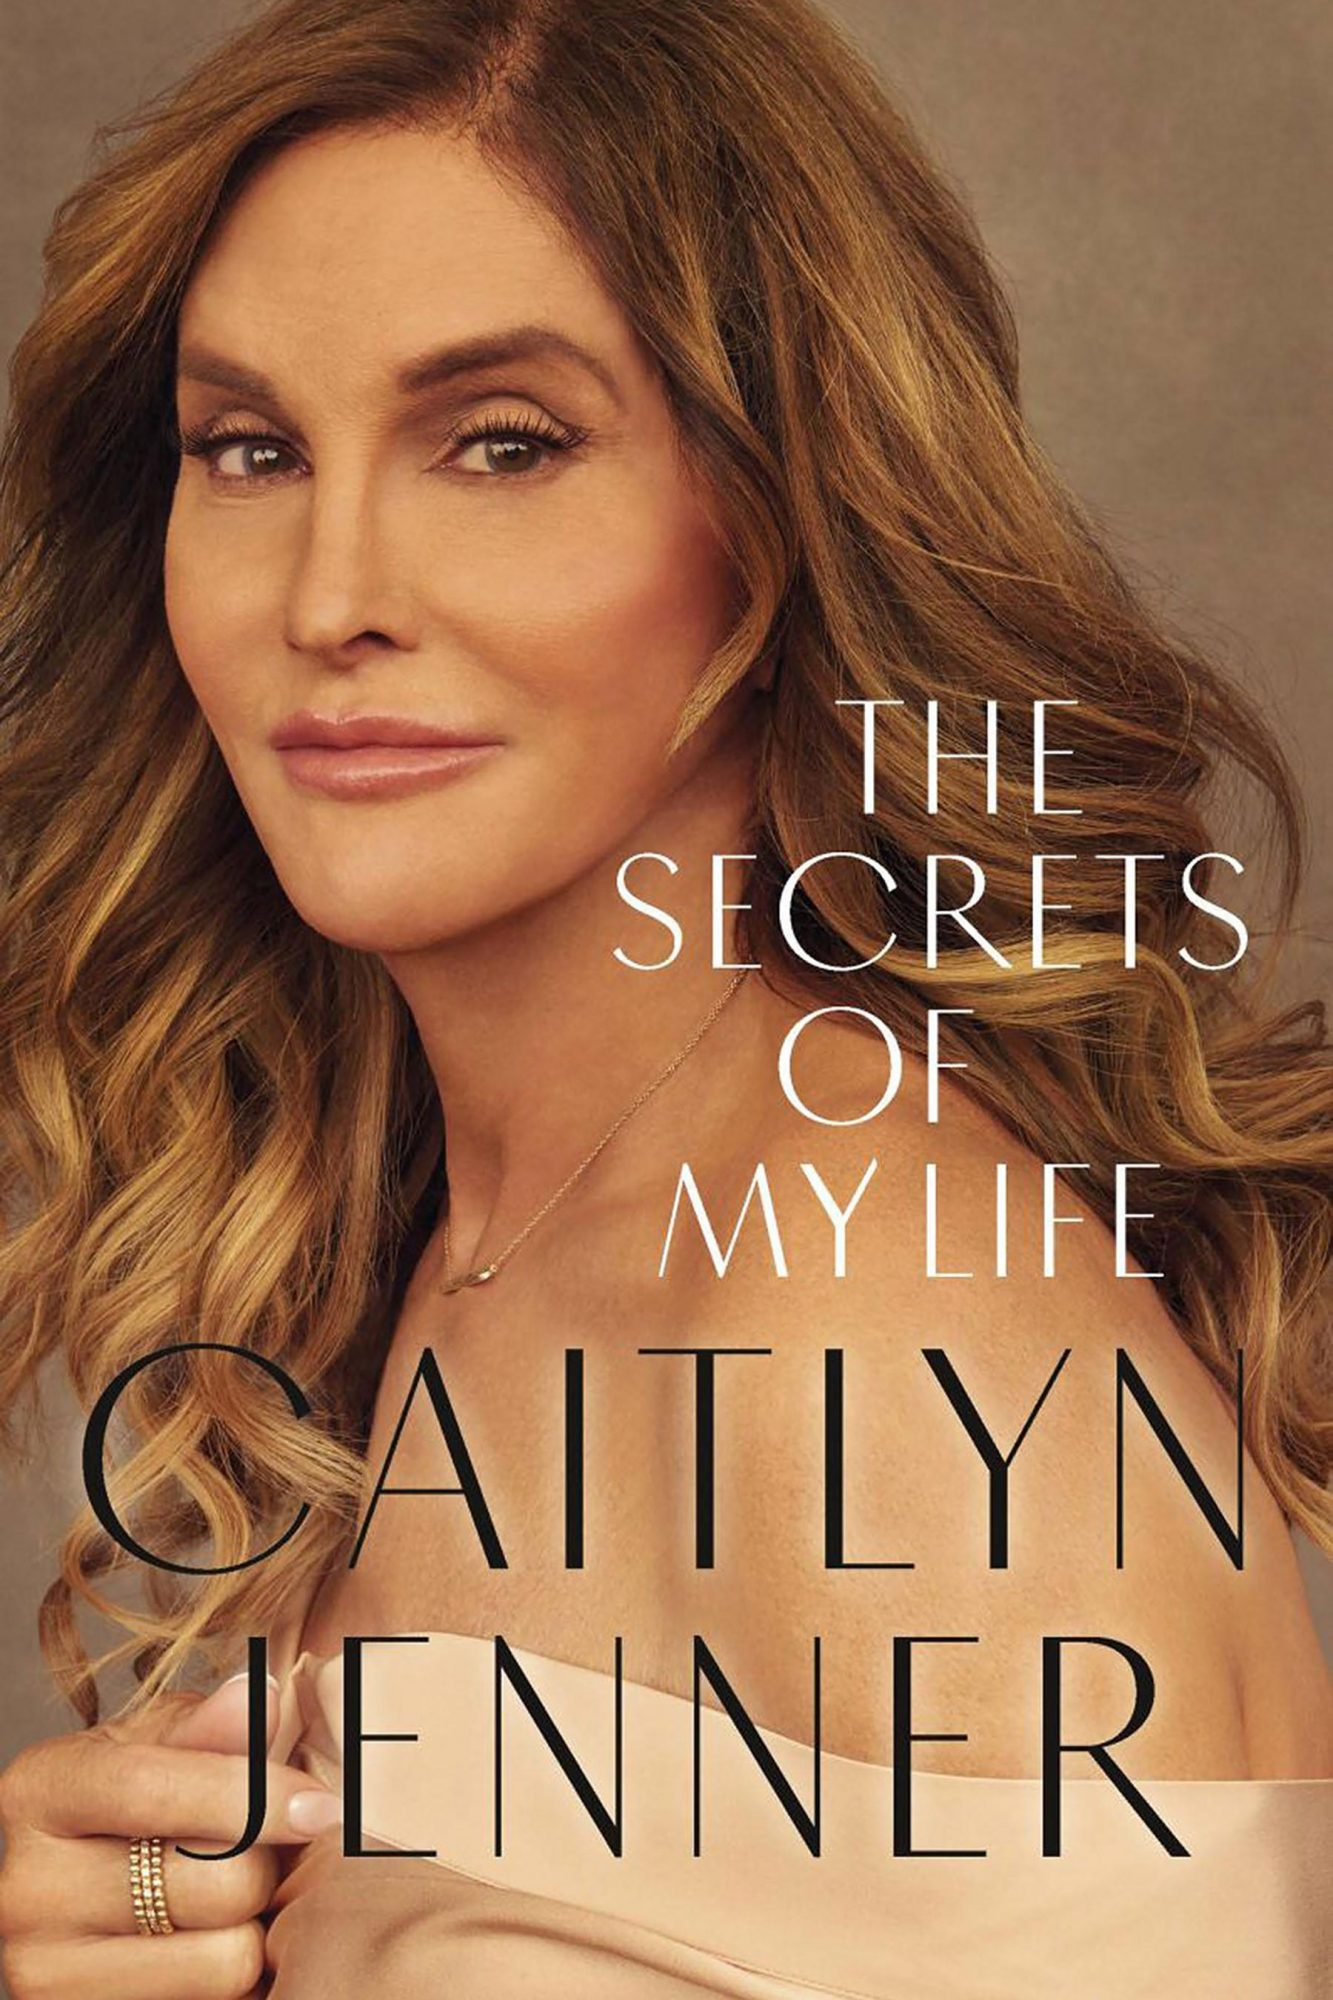 The Secrets of My Life by Caitlyn Jenner CR: Grand Central Publishing